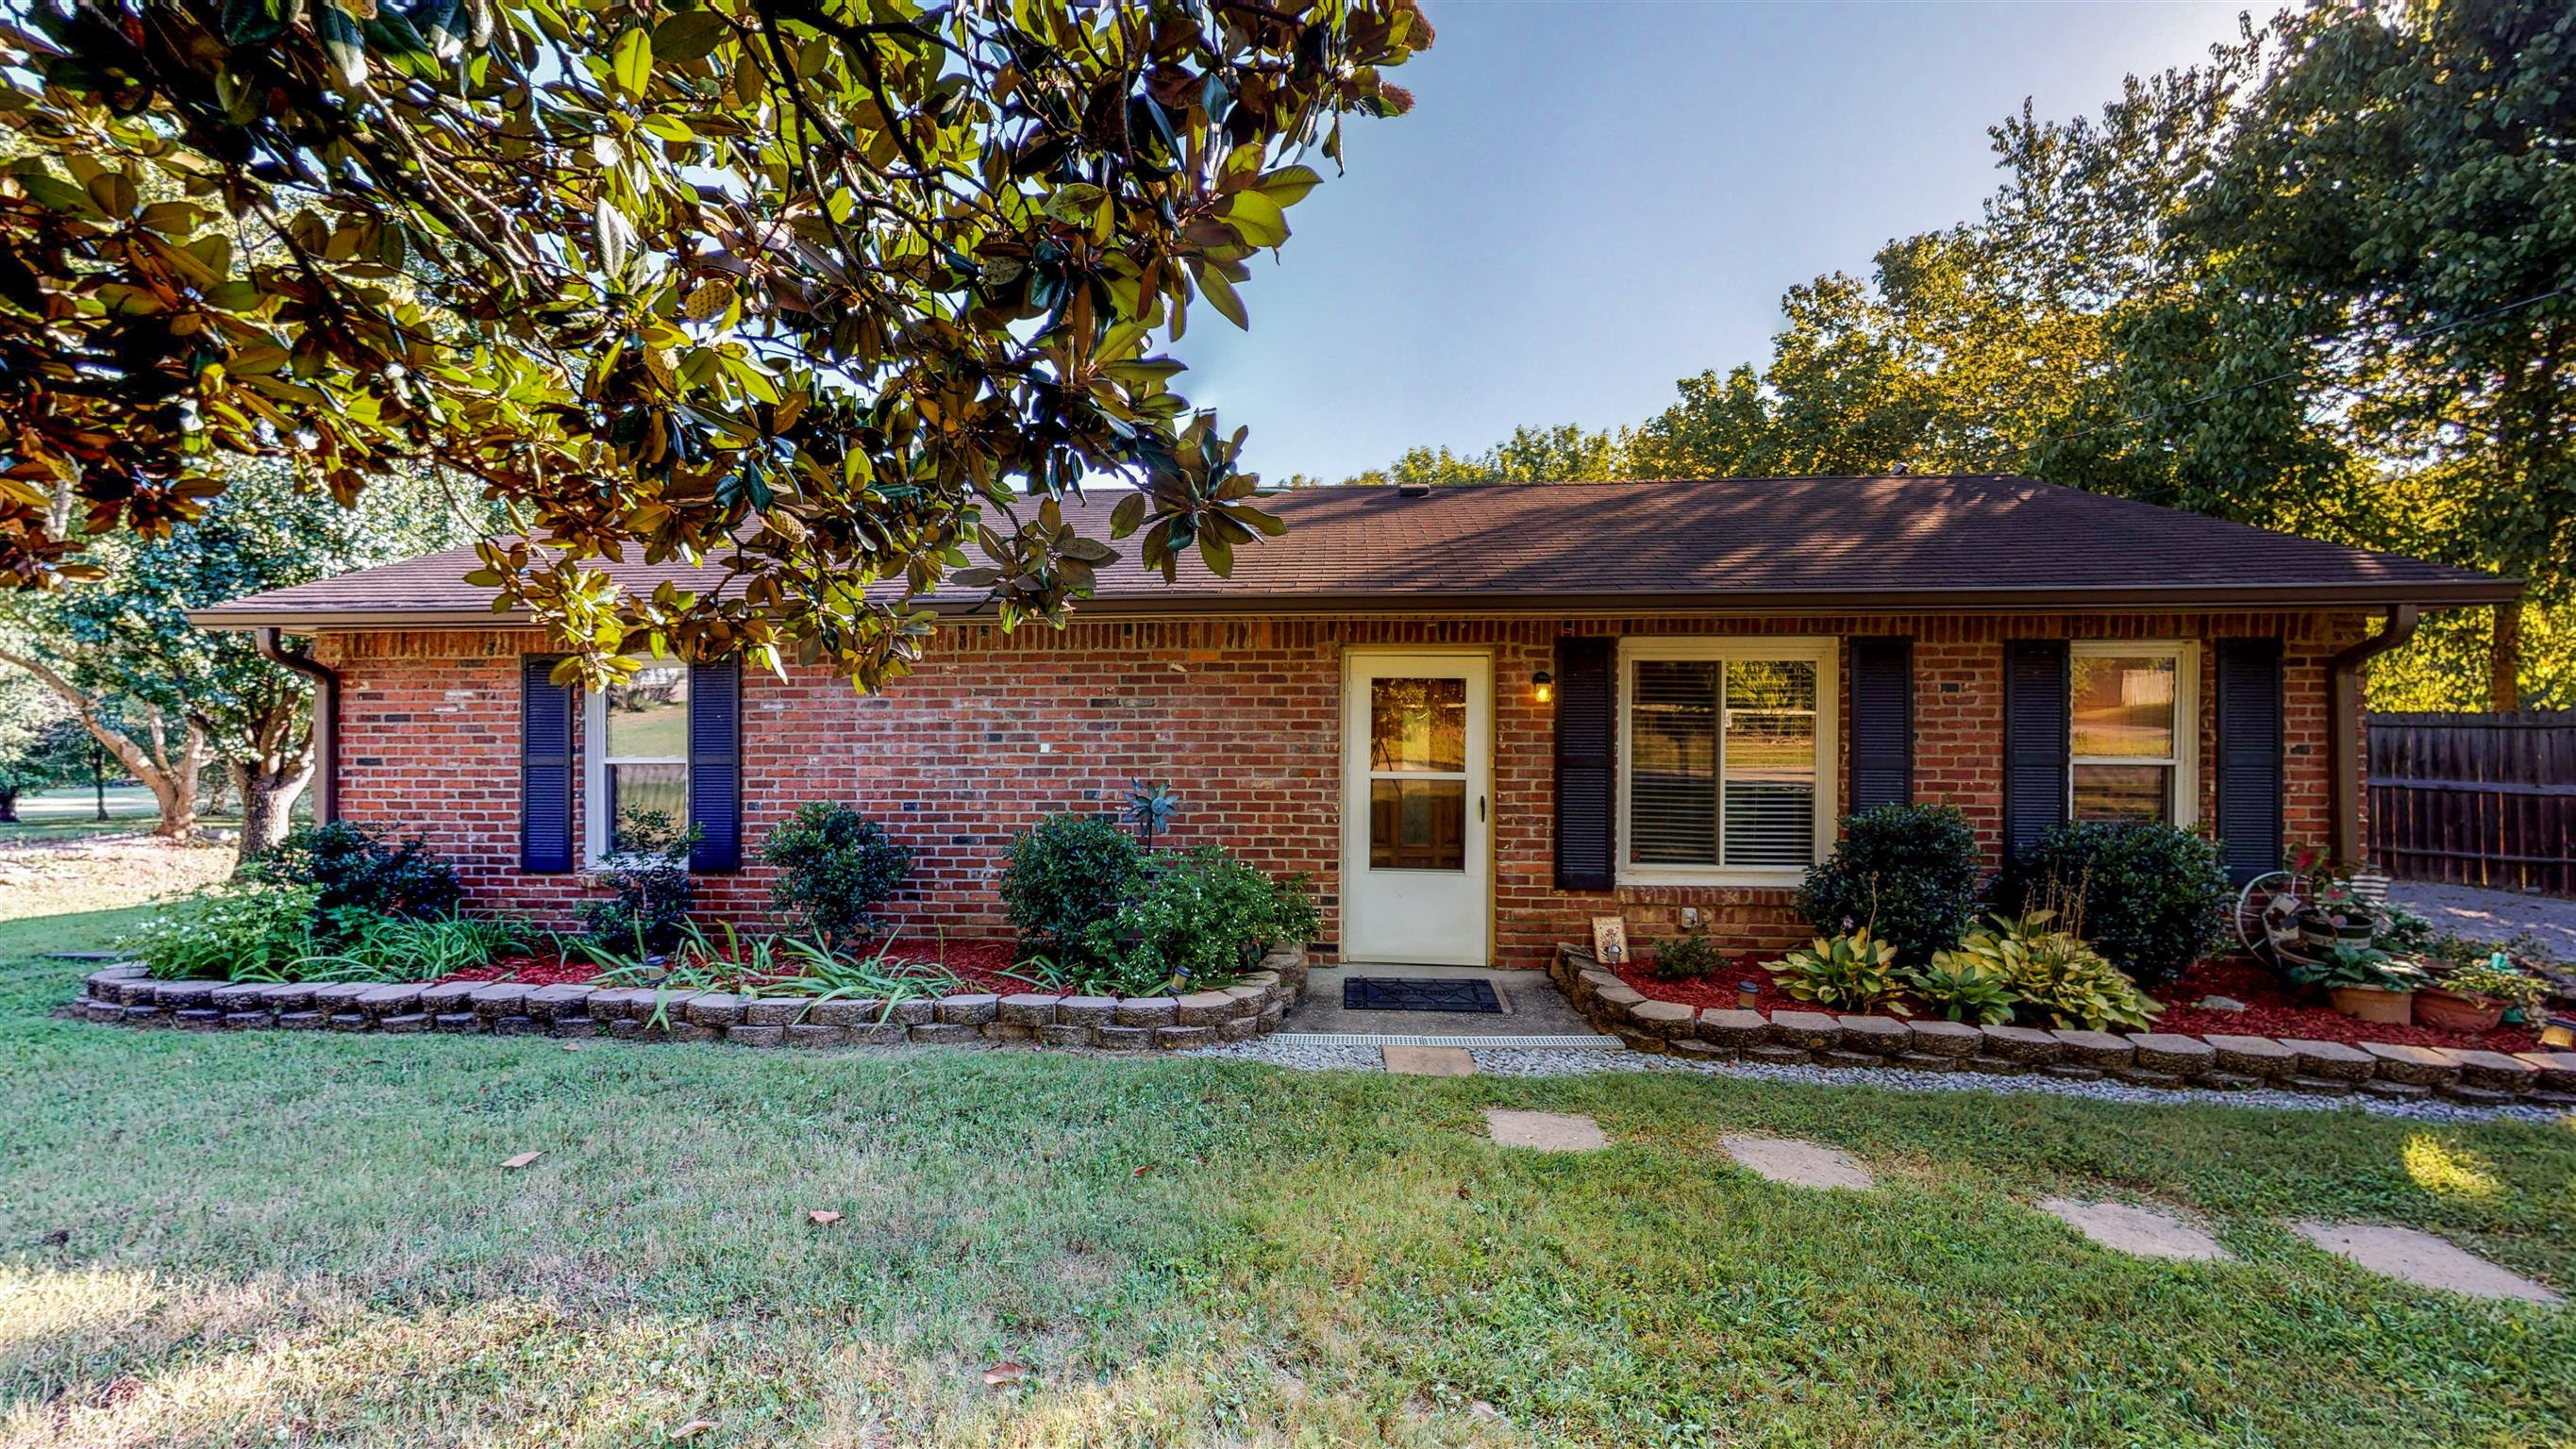 5600 Zapata Dr, Pegram, TN 37143 - Pegram, TN real estate listing